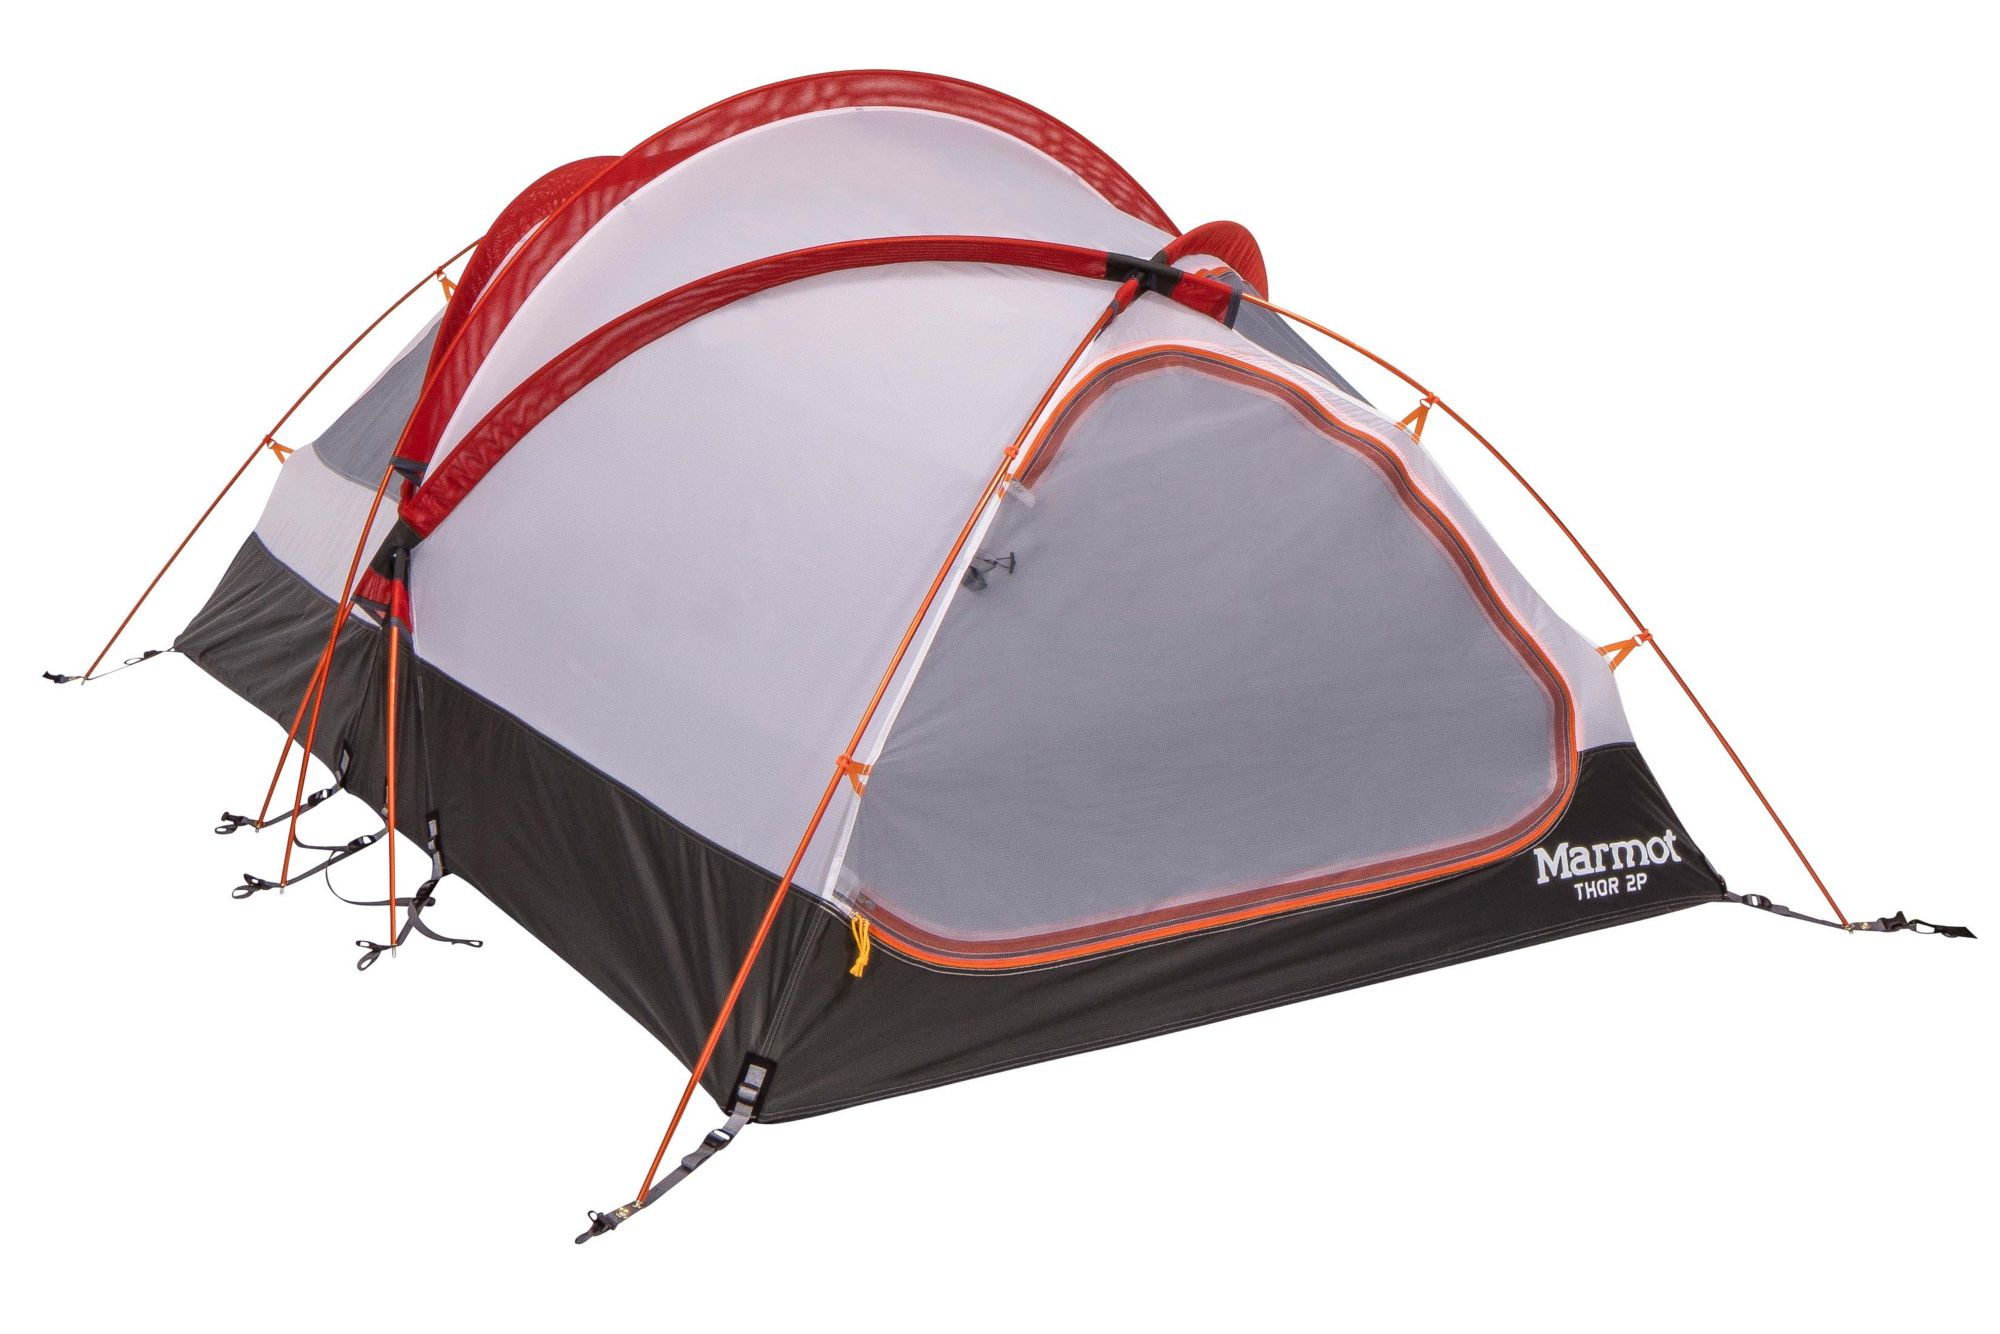 Thor 2P Blaze medium  sc 1 st  Marmot & Tents / Equipment | Marmot.com